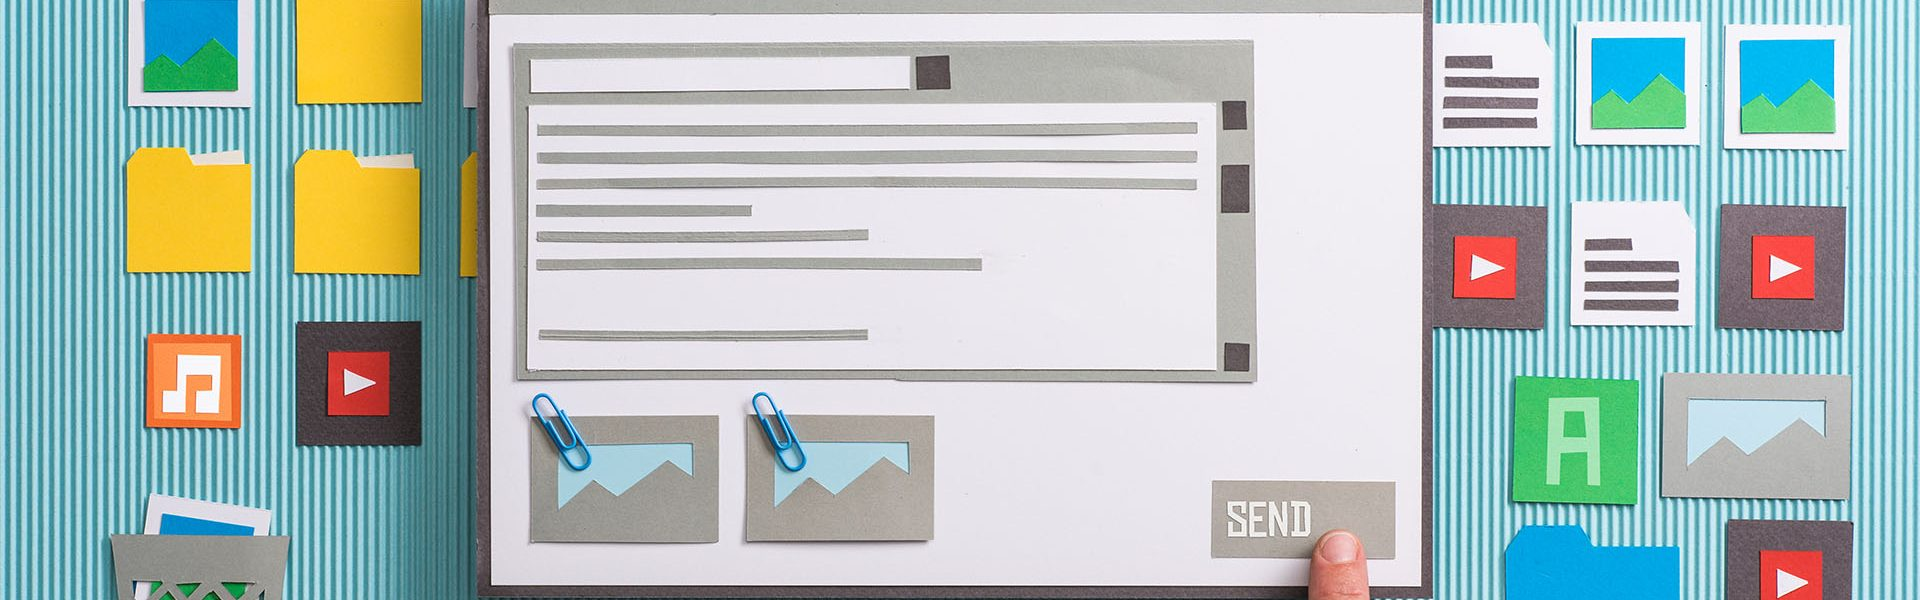 How to Succeed with your Email Marketing Strategy